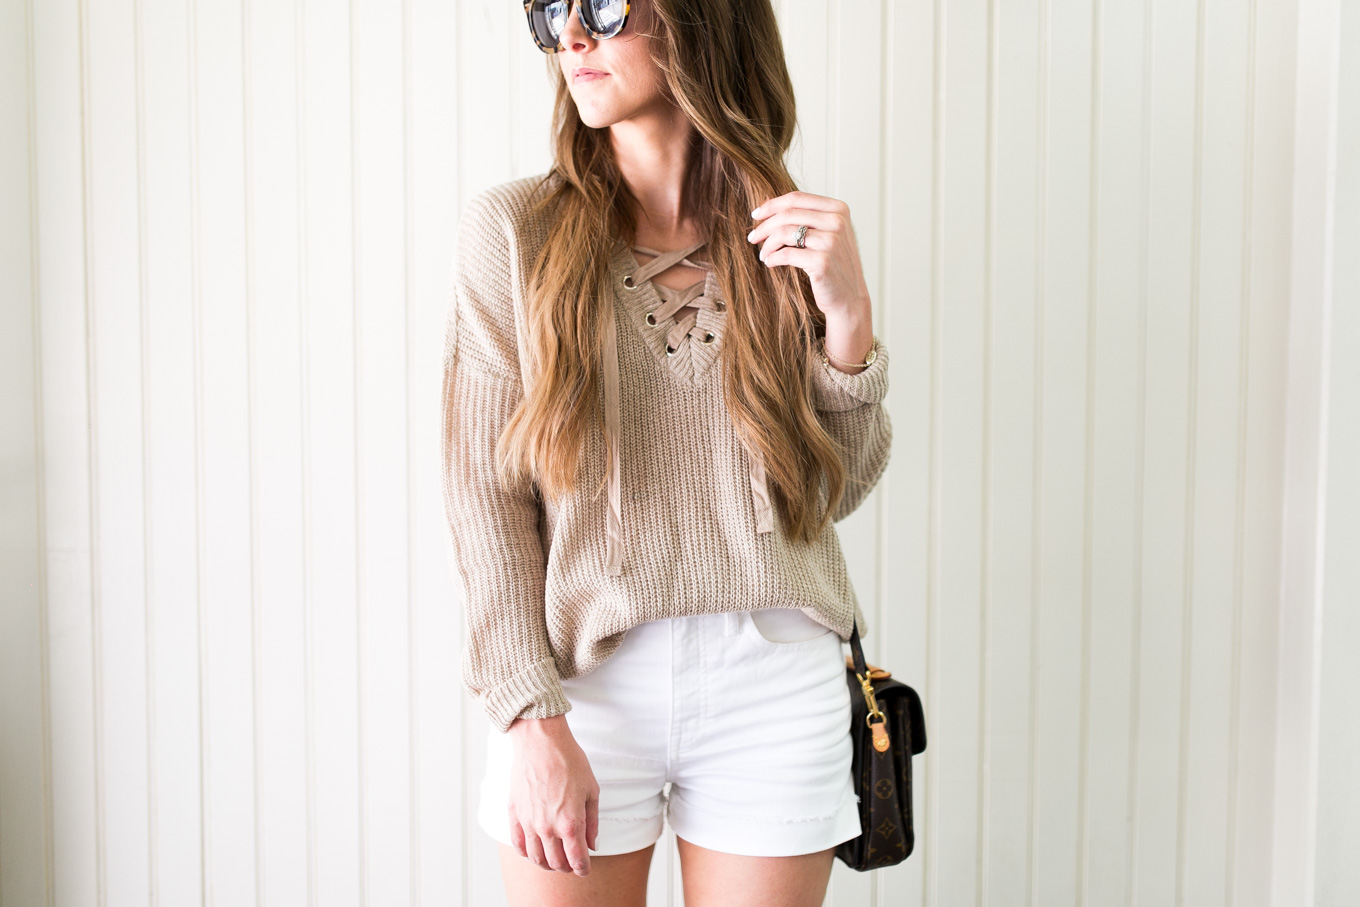 Daryl-Ann Denner wearing white shorts and lace-up summer sweater